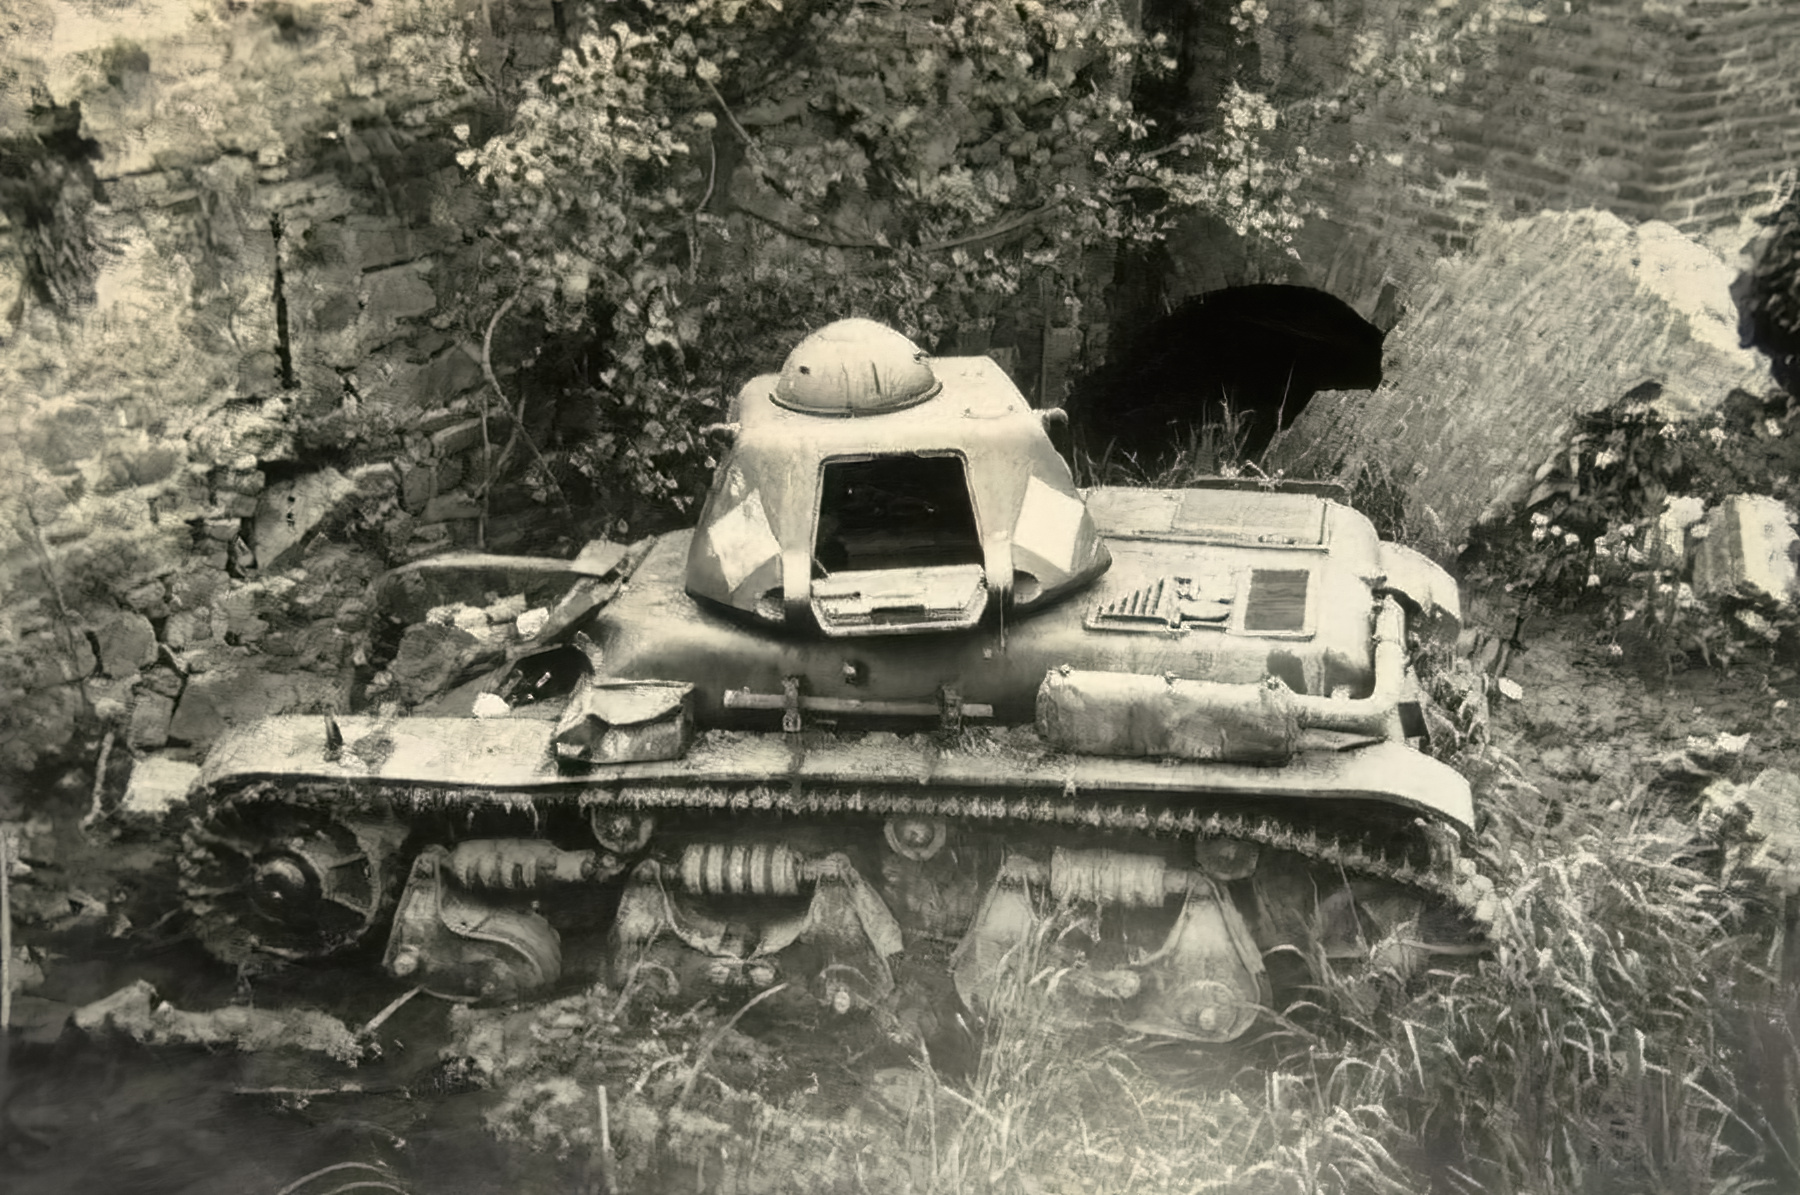 French Army Renault R35 support tank abandoned battle of France 1940 ebay 04